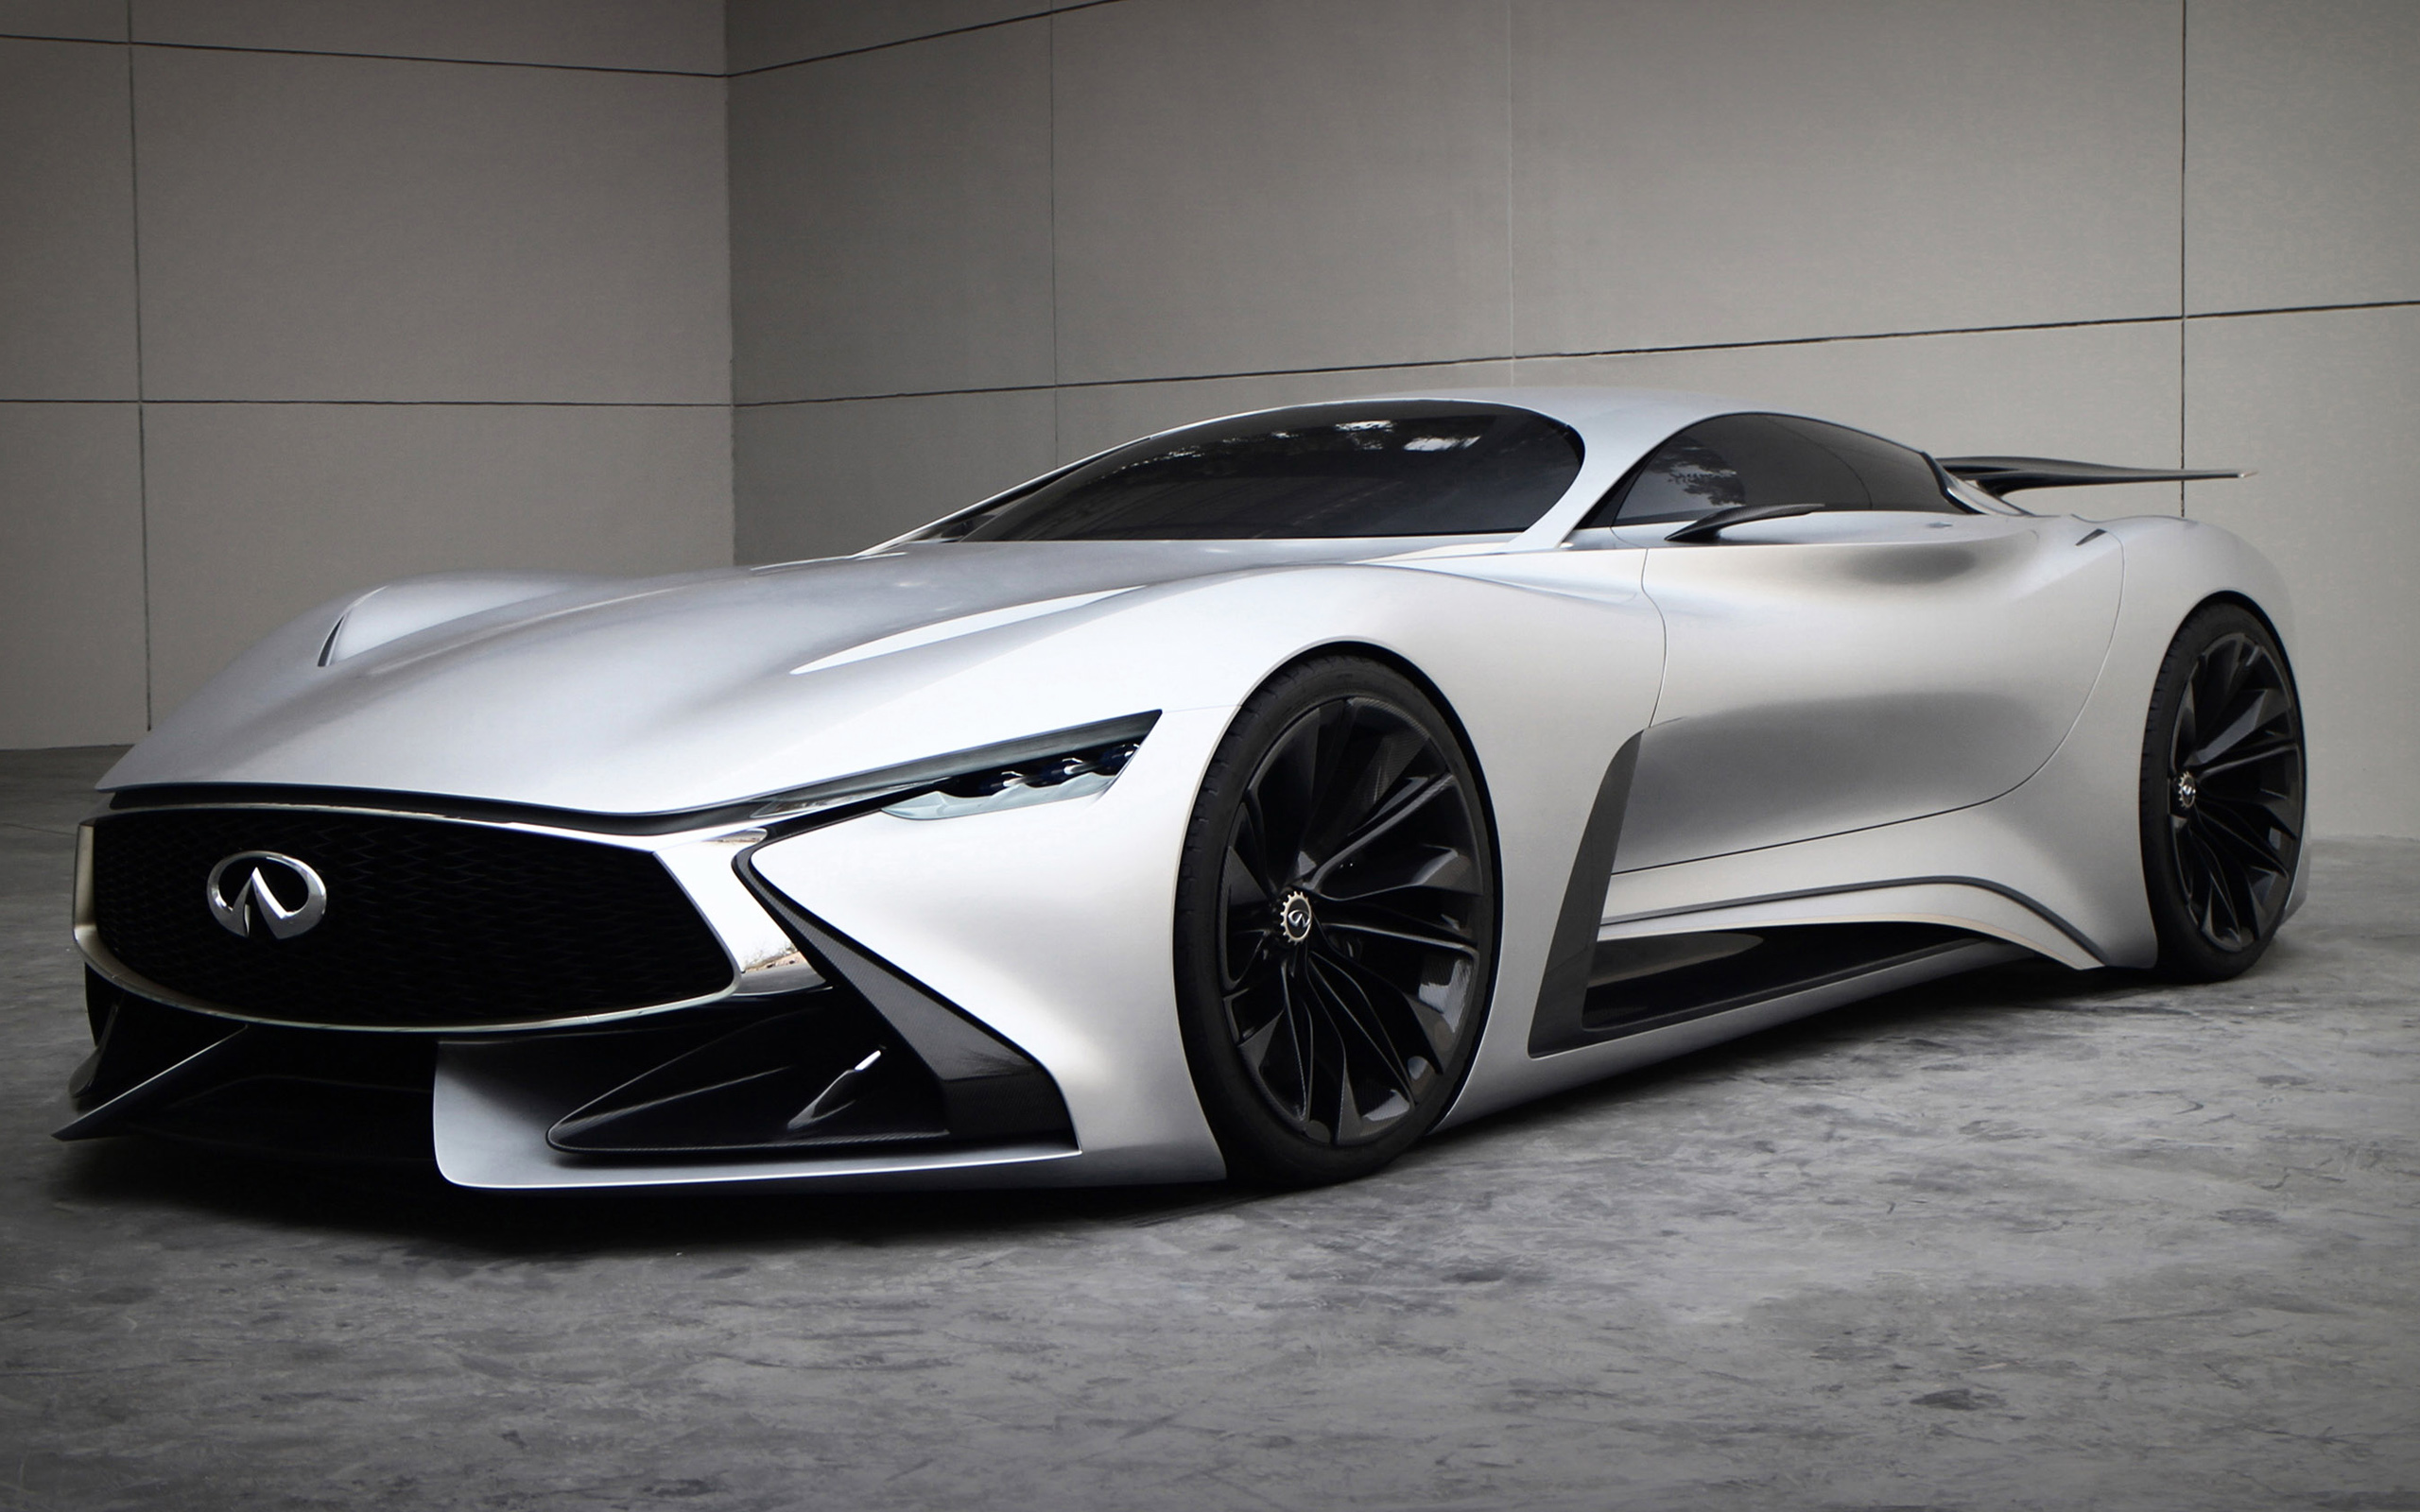 2015 infiniti vision gt concept 2 wallpaper hd car wallpapers. Black Bedroom Furniture Sets. Home Design Ideas